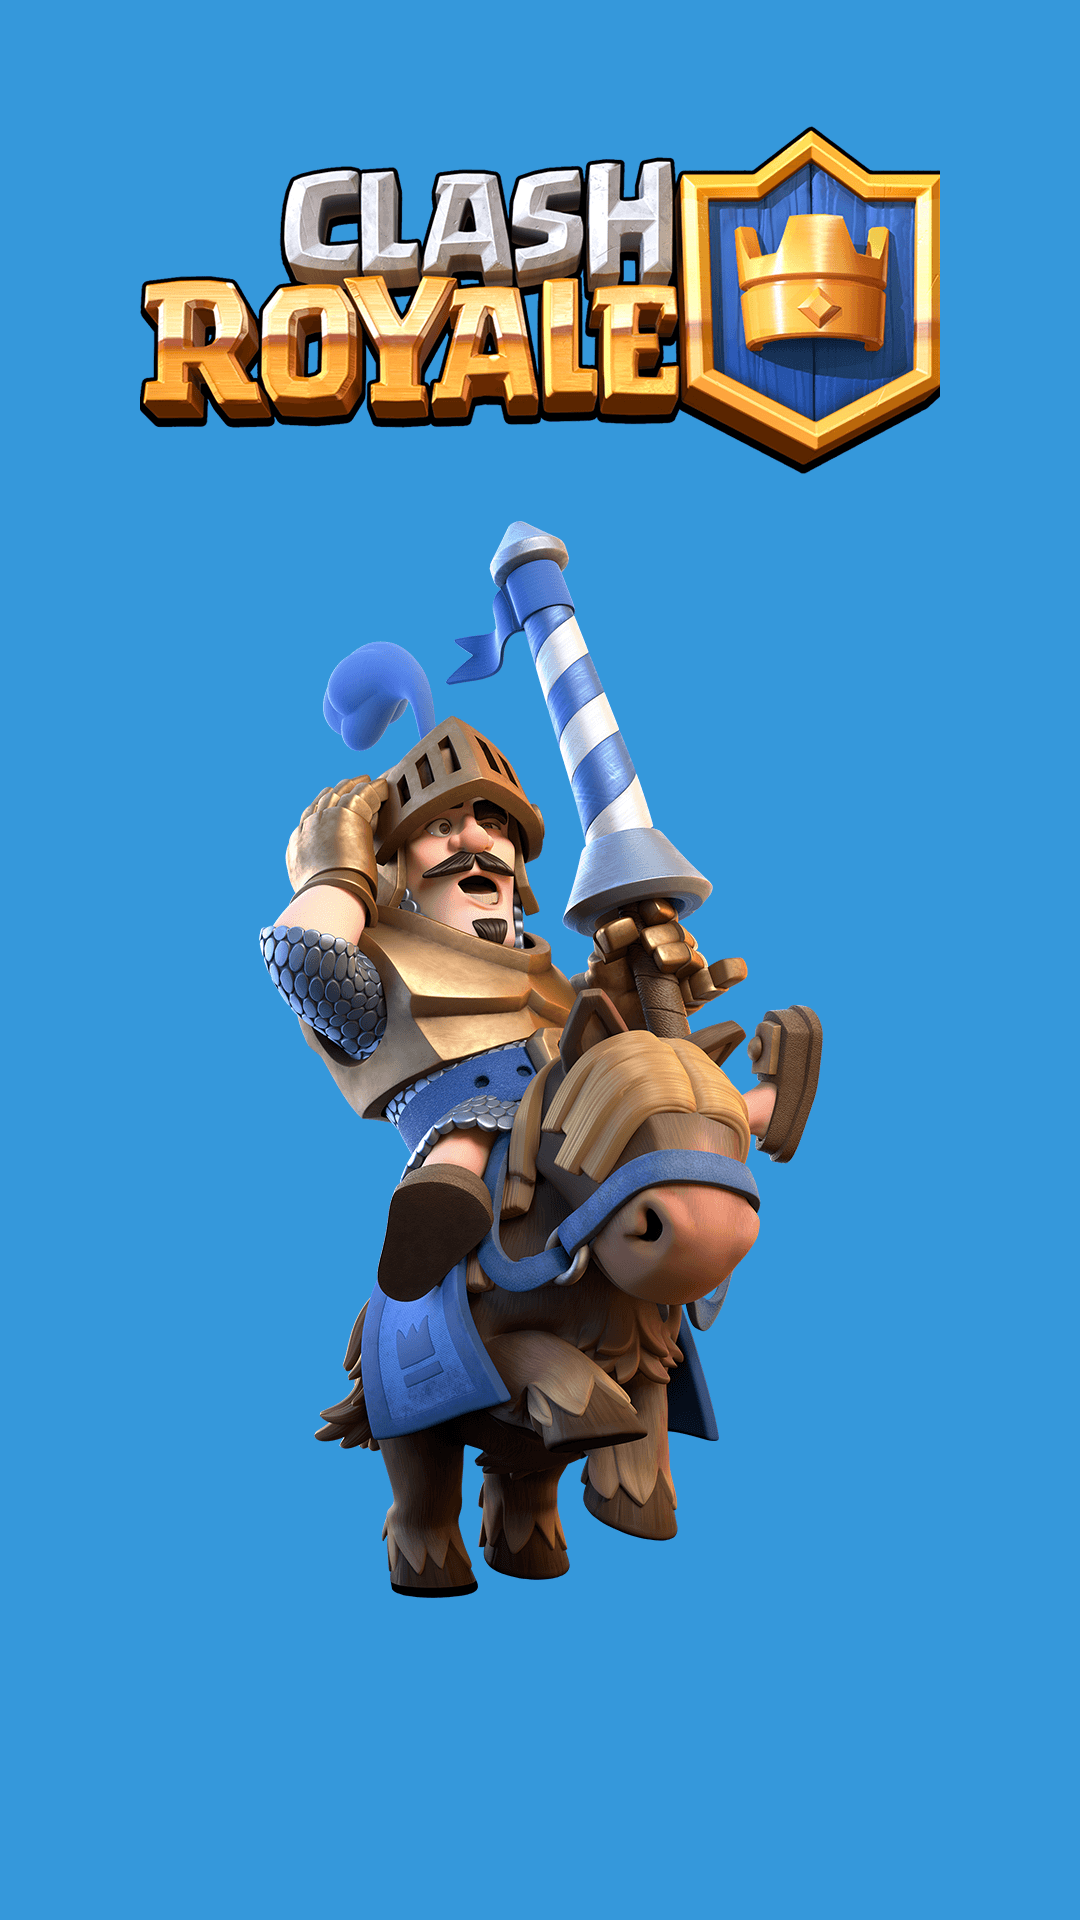 The Blue Prince Clash Royale Games iPhone Wallpaper – Wallpapers …